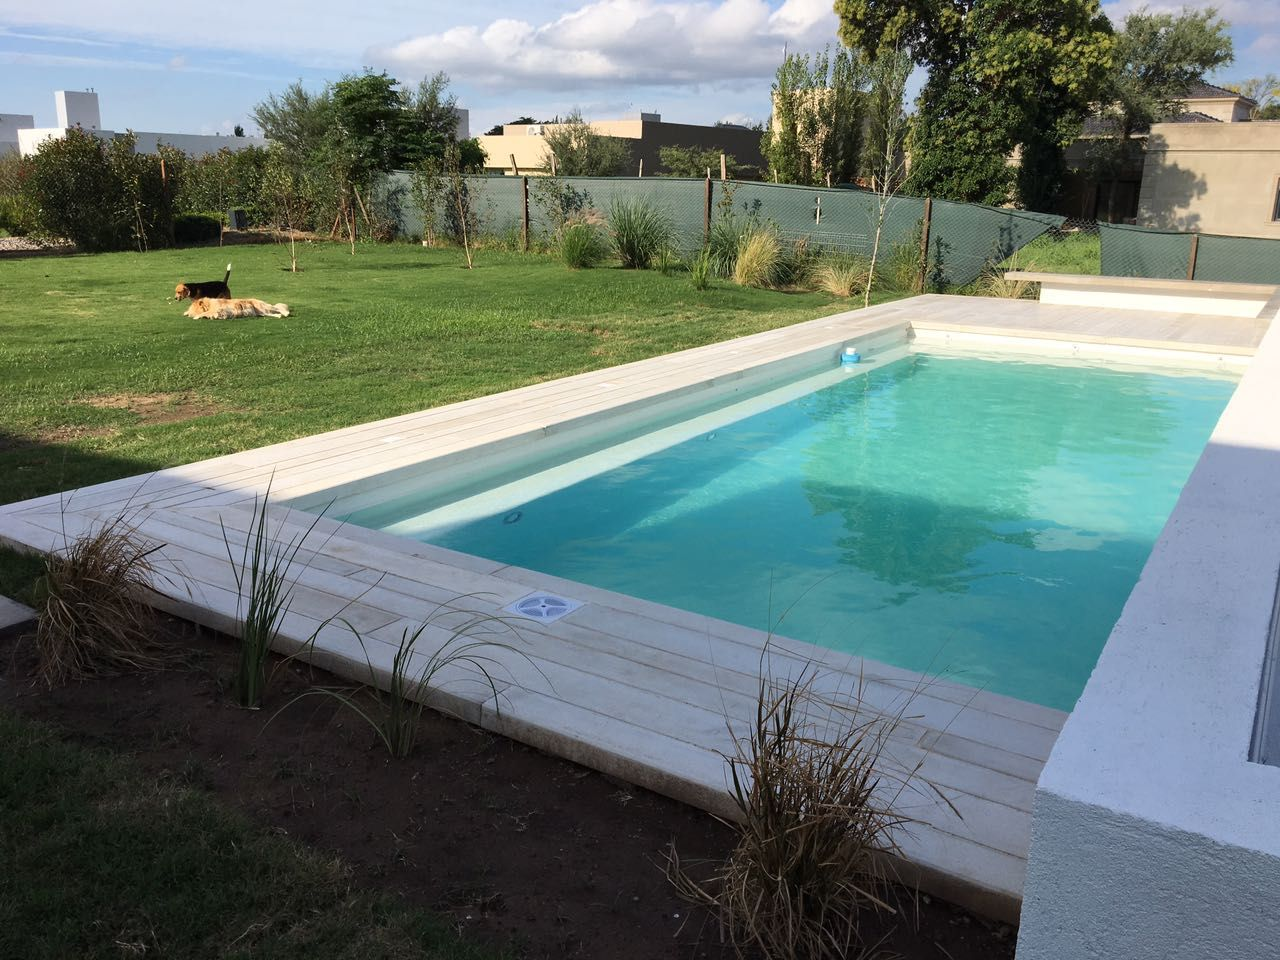 piscina - infinity glass - desborde- deck - diseÑo exclusivo